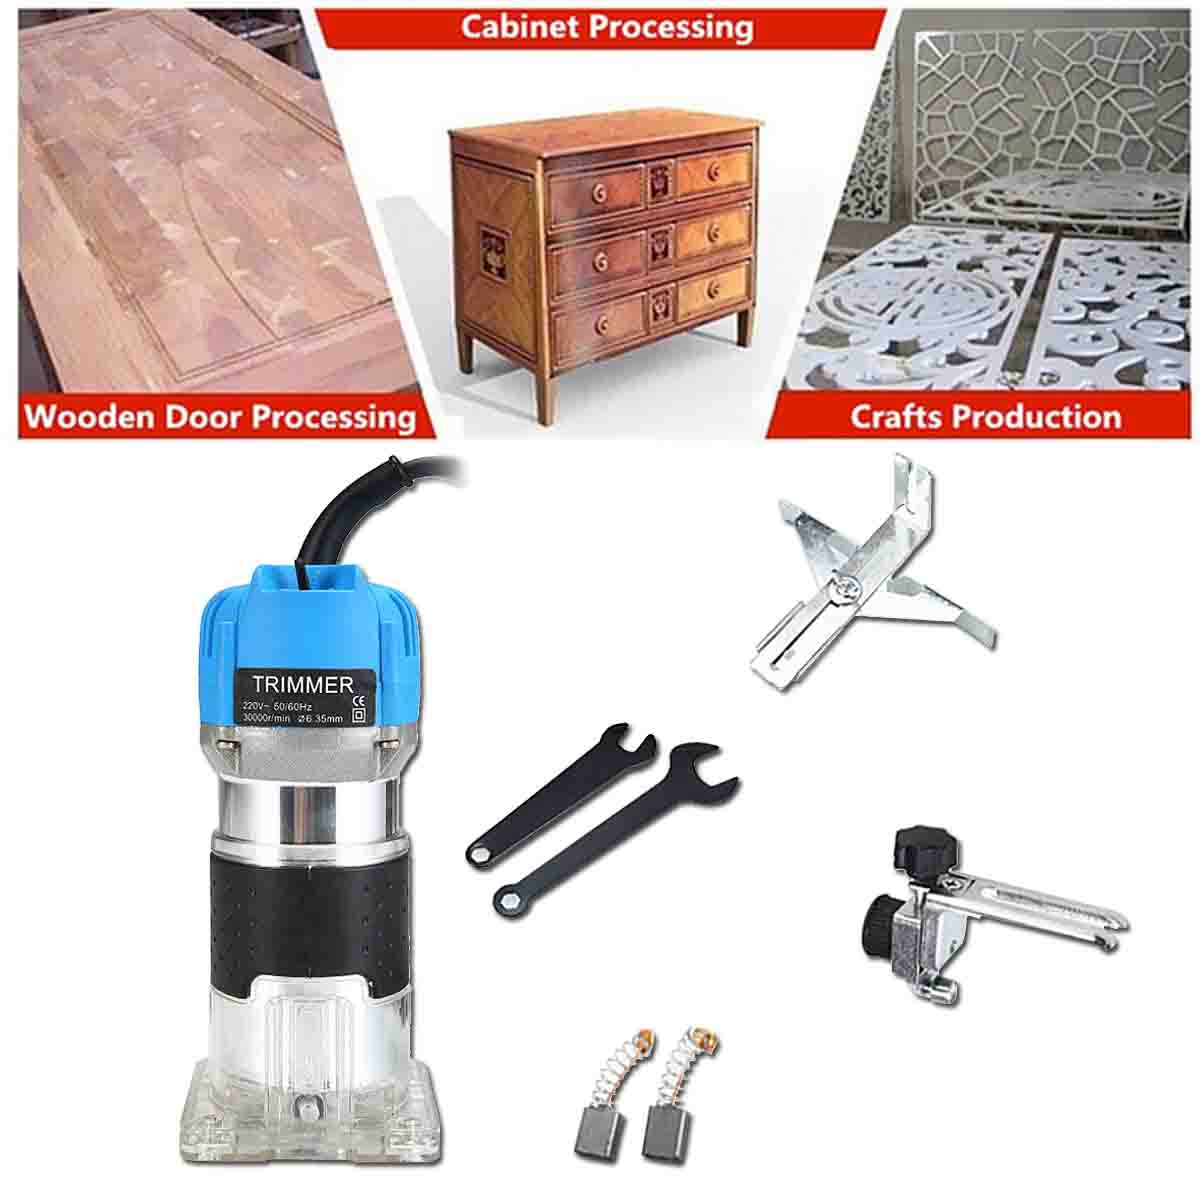 Tools : 220V 3000W Electric Trimmer Handheld Woodworking Laminator 6 35mm Collet Wood Router Milling Engraving Slotting Joiner Machine